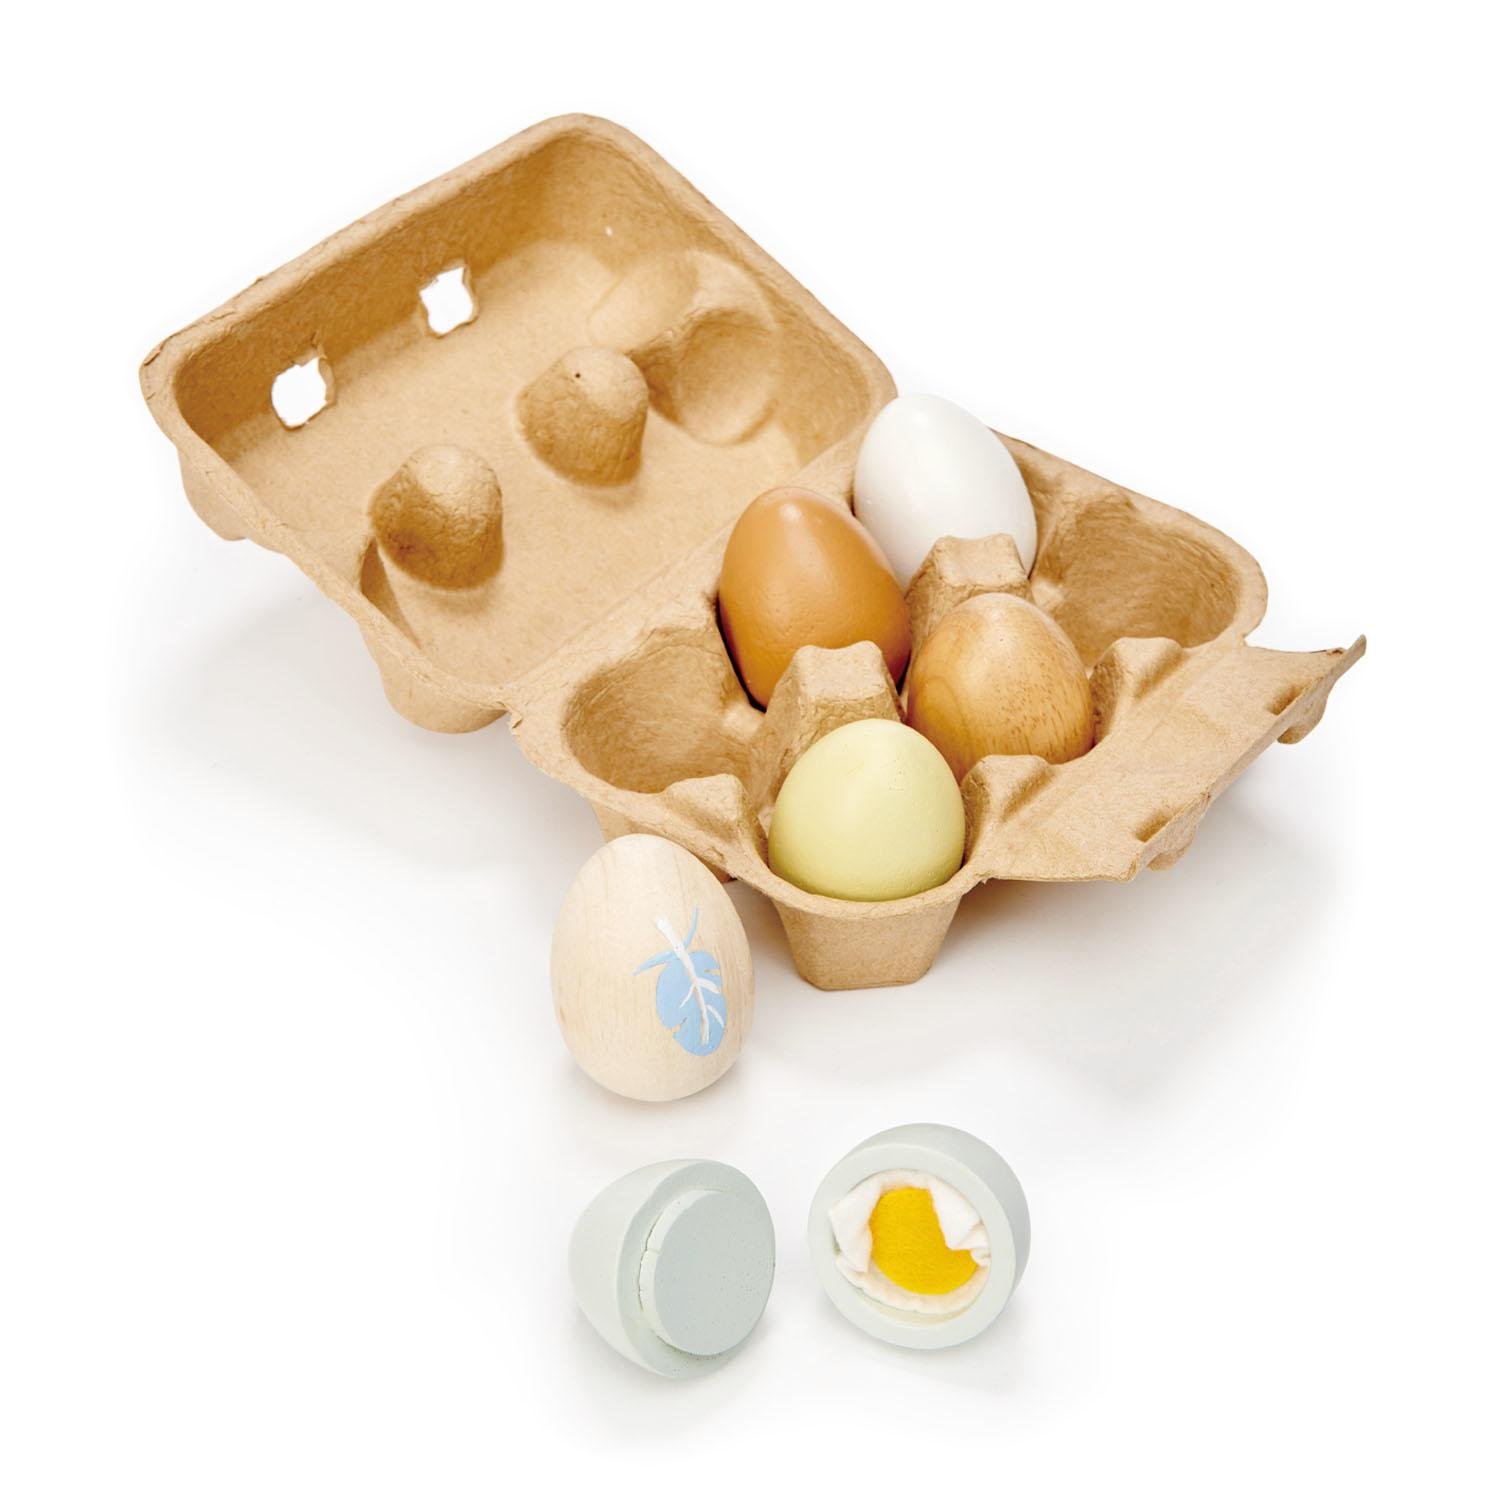 New Authentic Egg Box with 6 Assorted Wooden Play Eggs #2